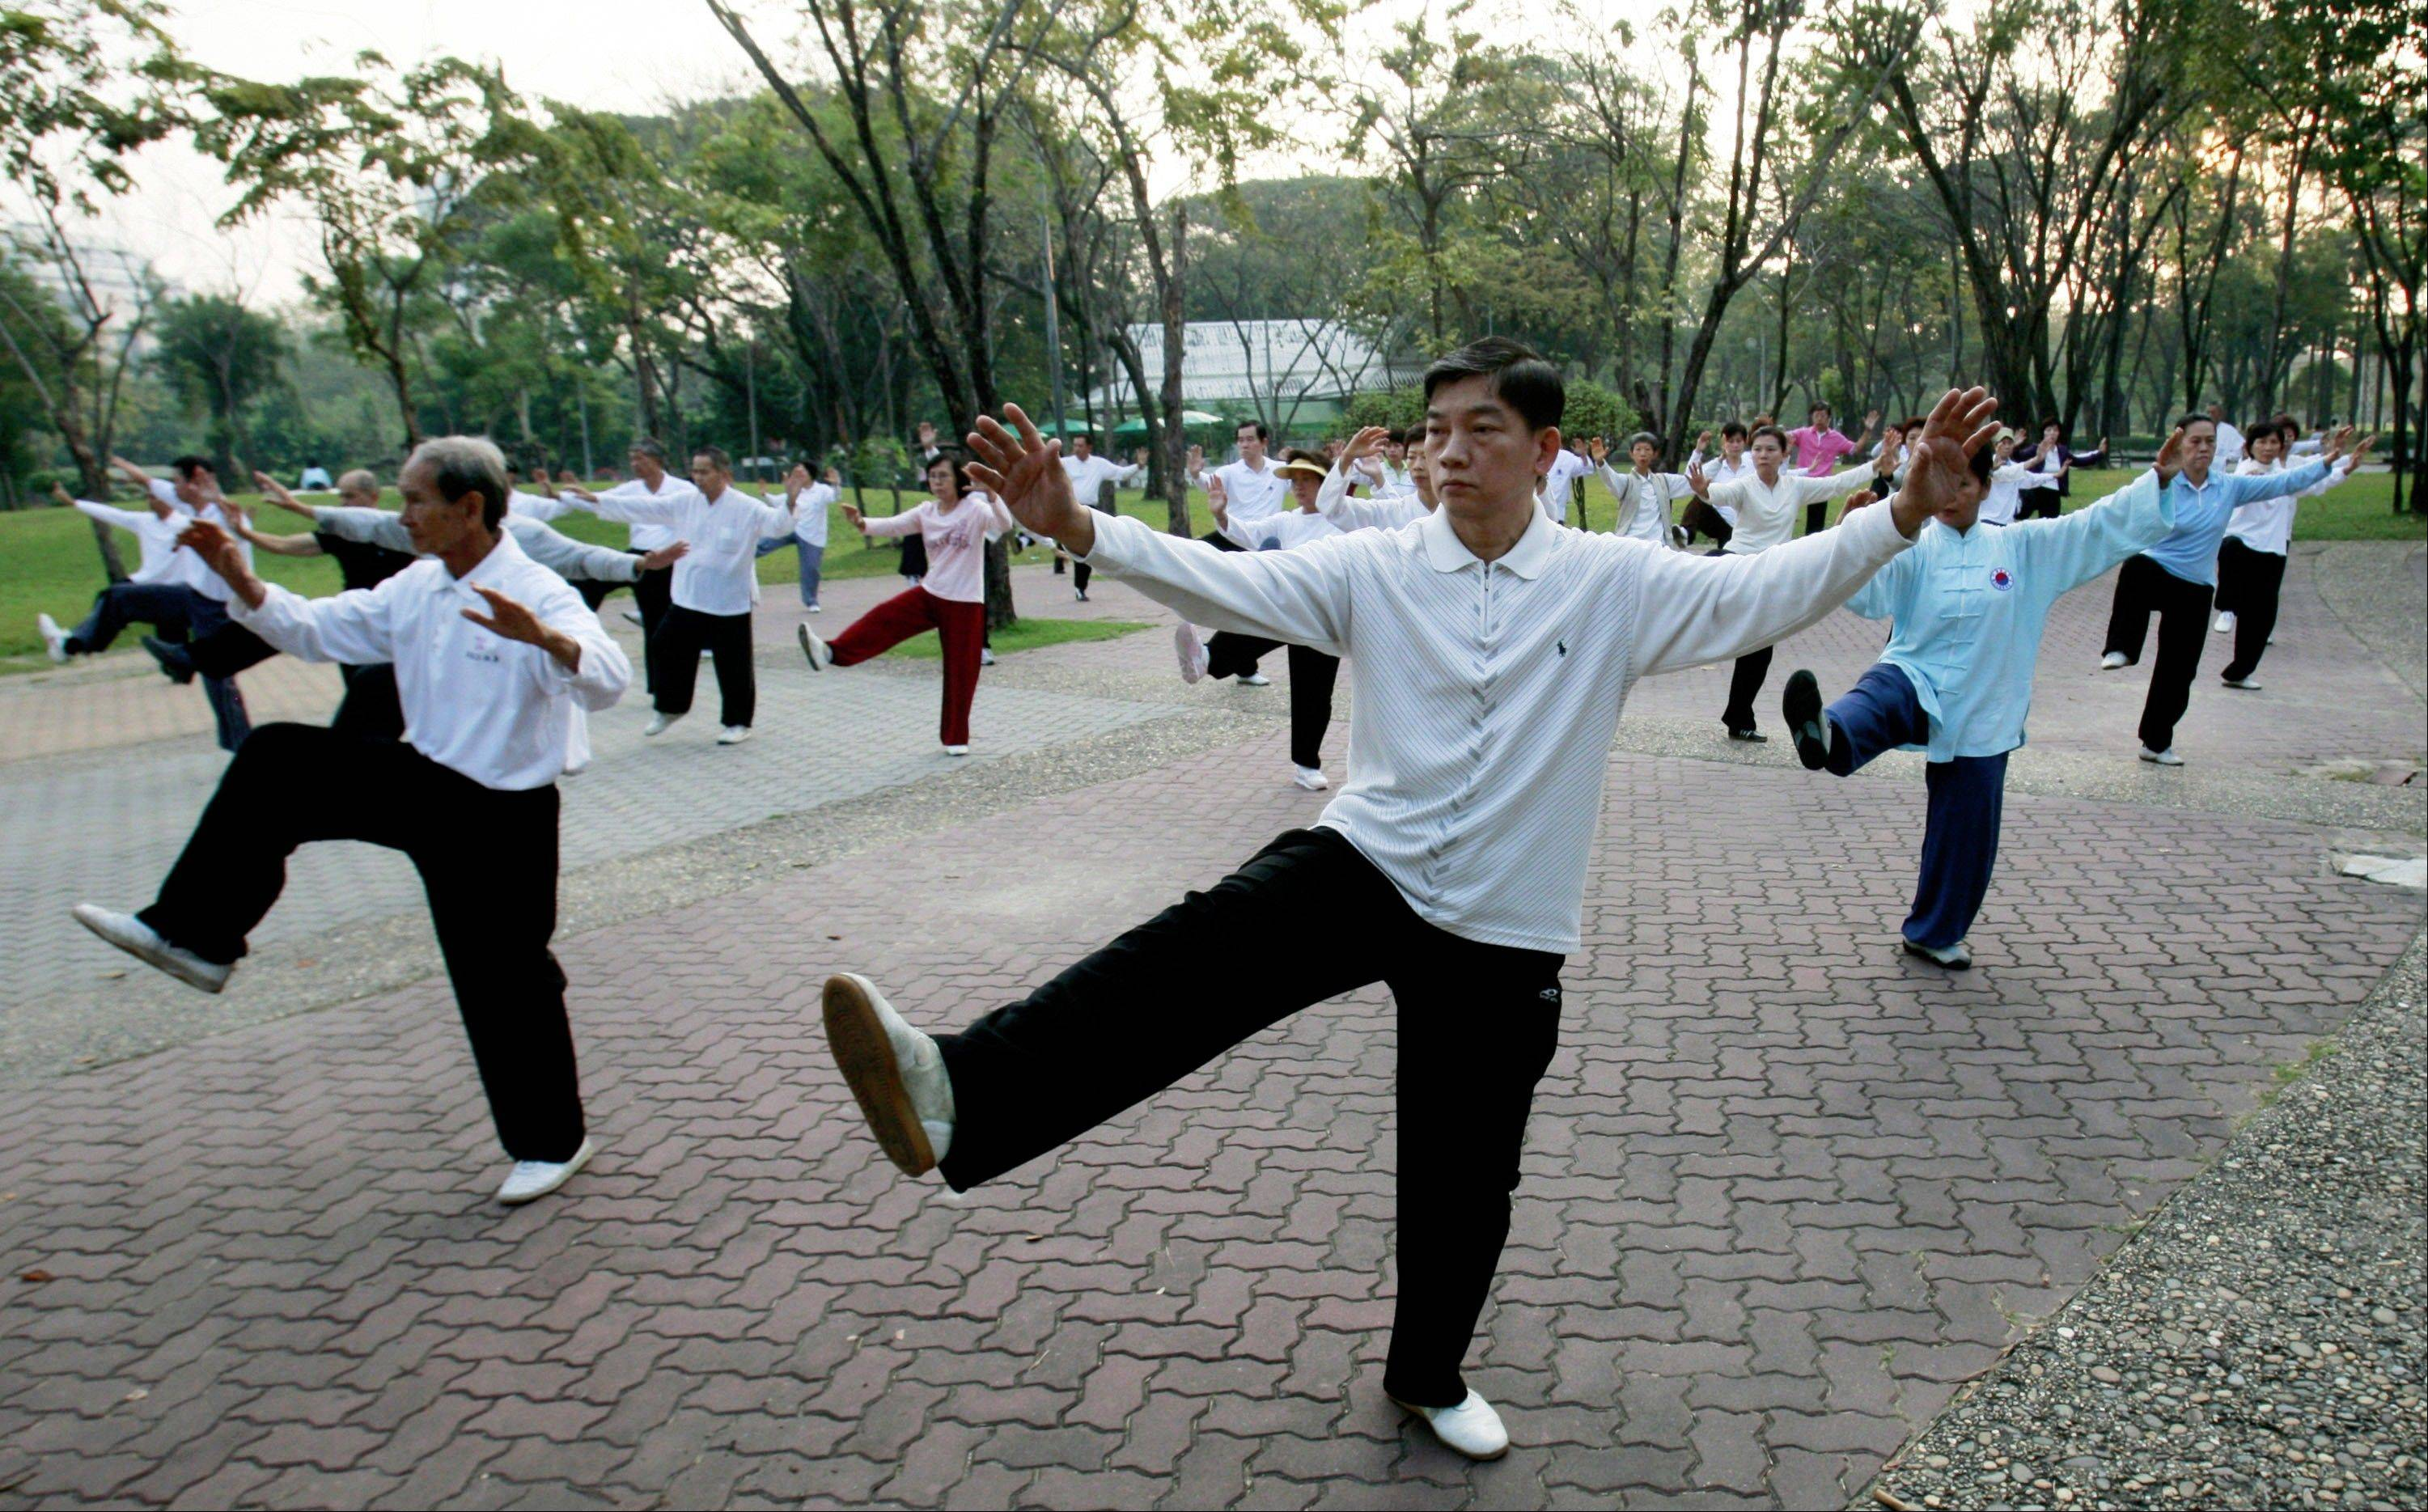 Thai-Chinese men and women perform morning exercises by practicing Chinese martial arts at a park in Bangkok, Thailand. New research concludes that even 15 minutes of moderate exercise like brisk walking can add years to your life.